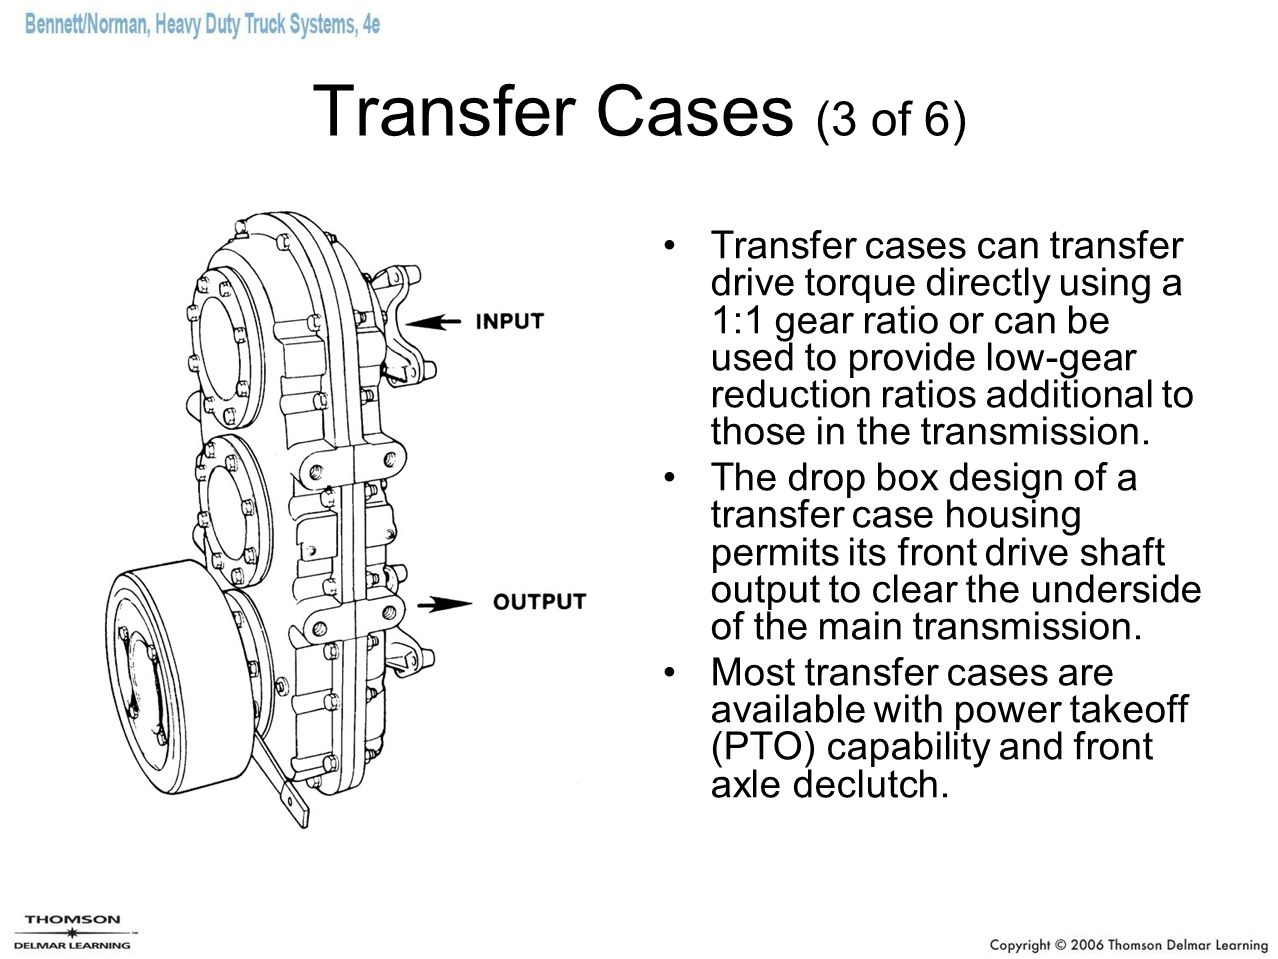 Transfer Cases (3 of 6) Transfer cases can transfer drive torque directly using a 1:1 gear ratio or can be used to provide low-gear reduction ratios a